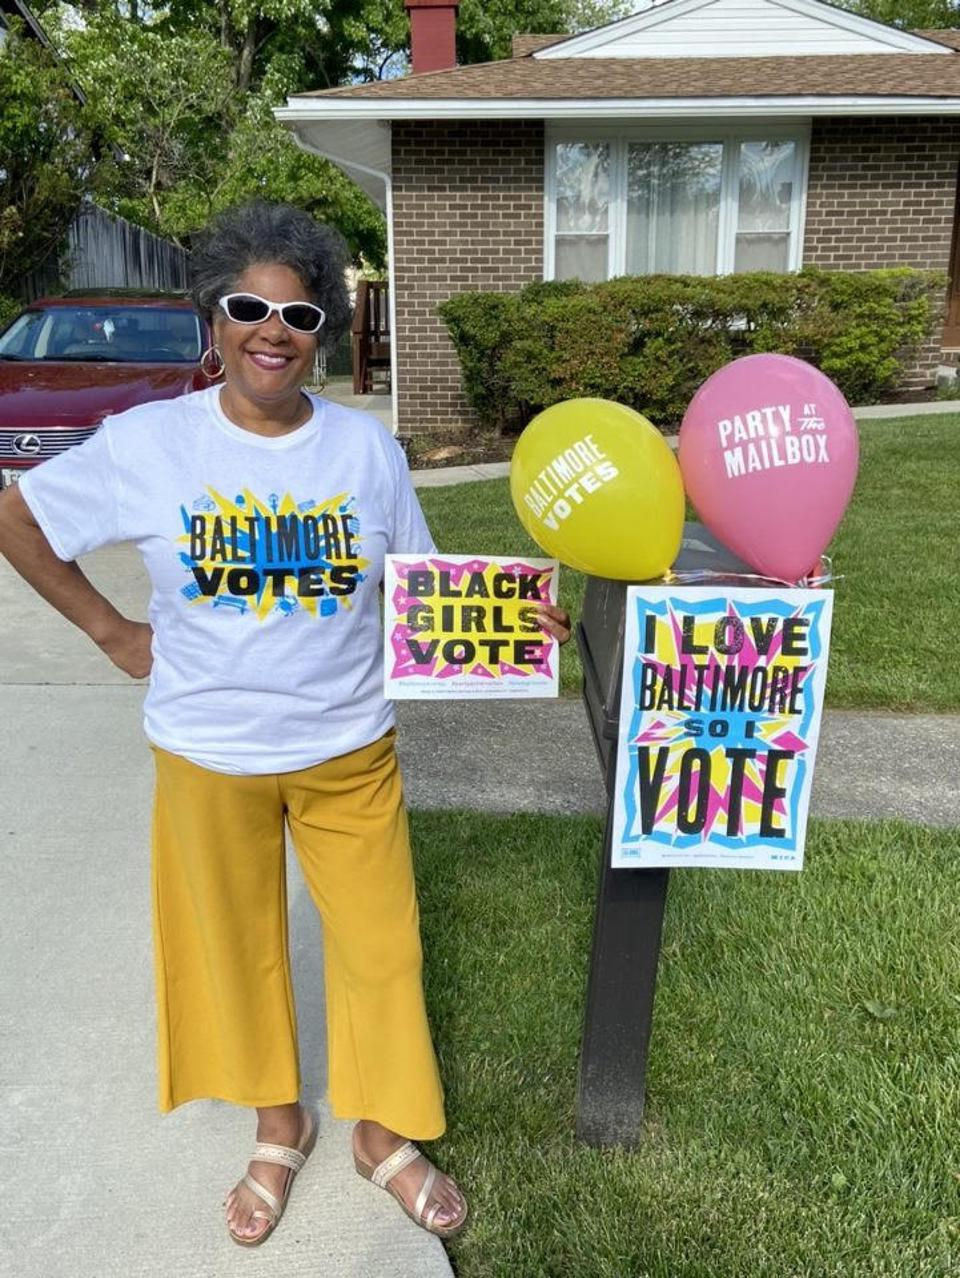 Sharon Eaton standing beside her mailbox with signs and balloons from her party box.